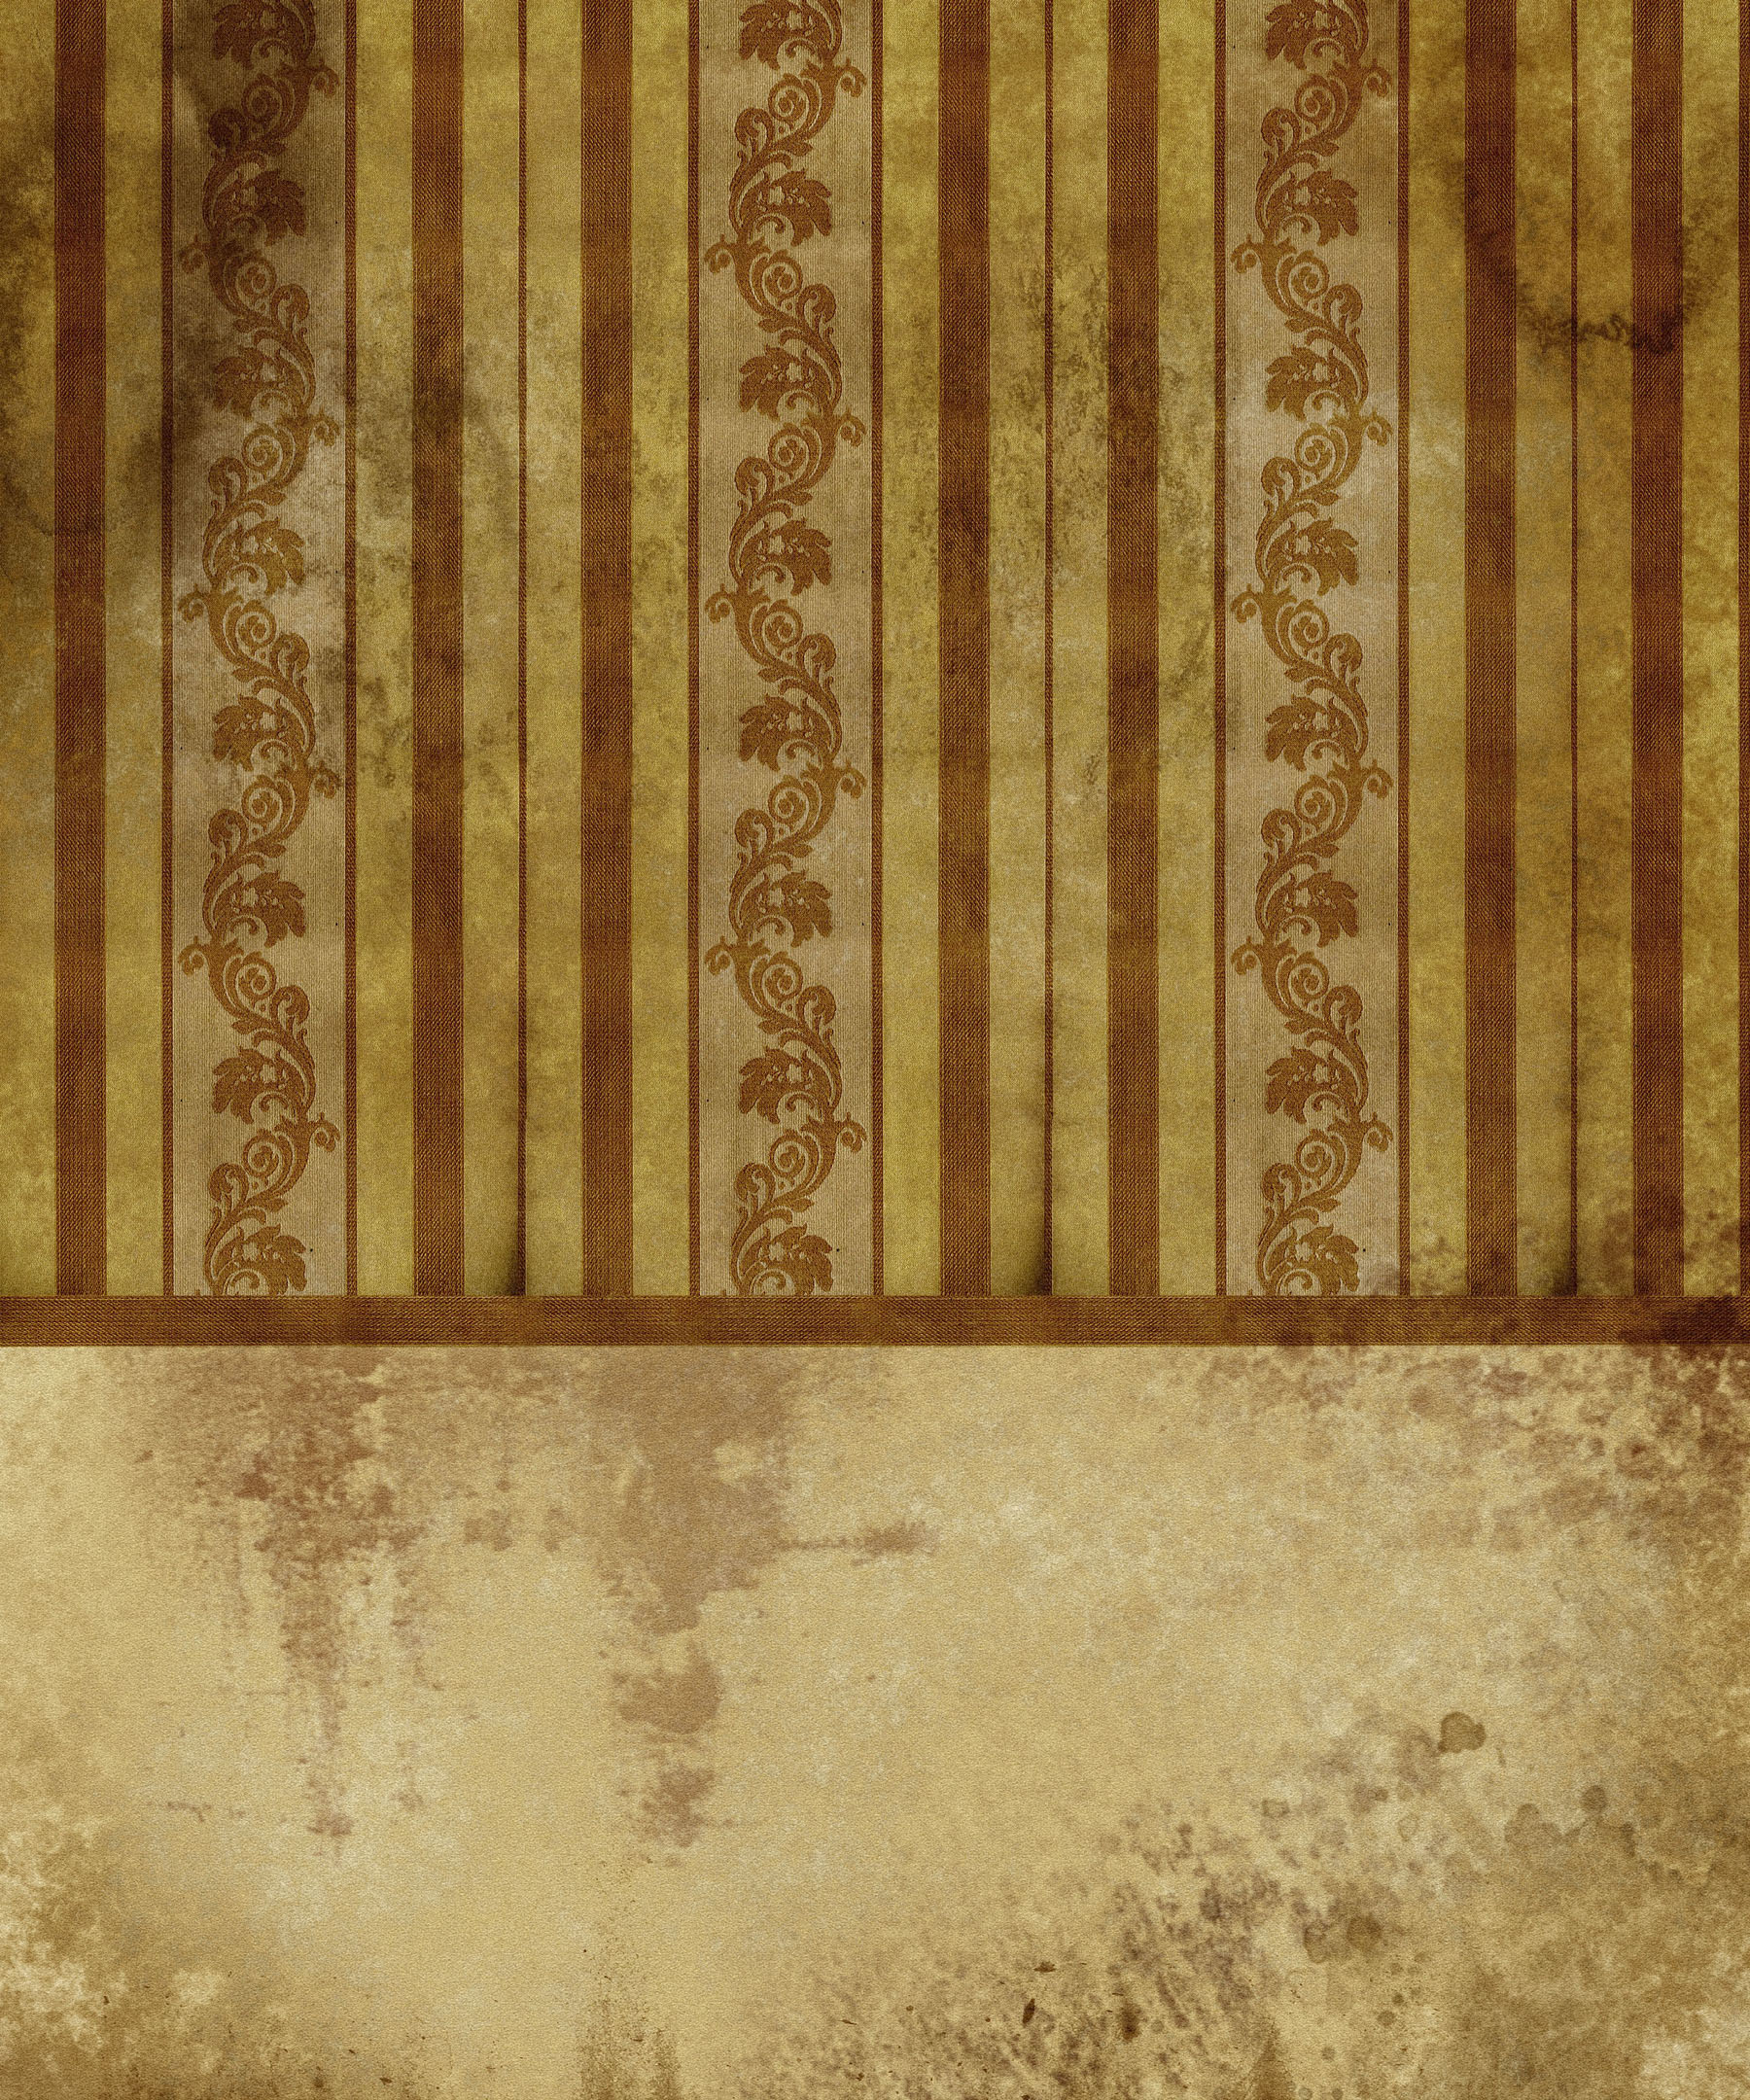 Old European-style wall wallpaper 11763